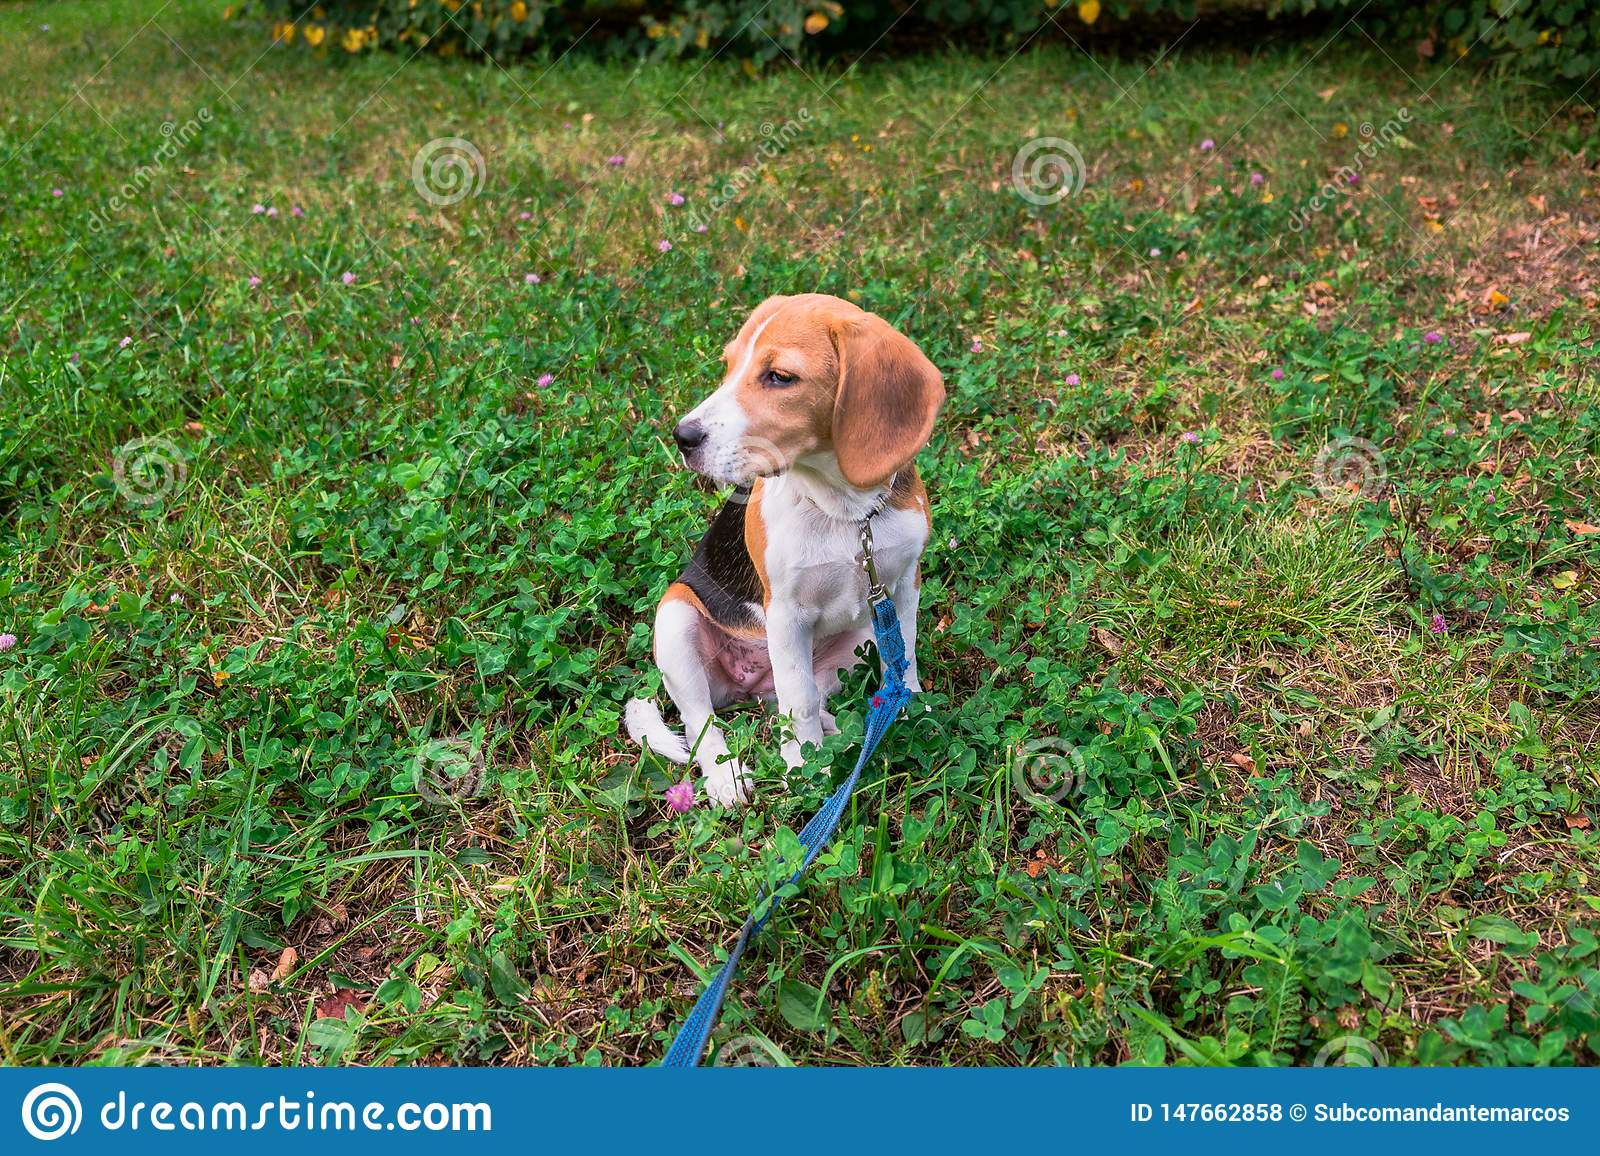 A thoughtful Beagle puppy with a blue leash on a walk in a city park. Portrait of a nice puppy.